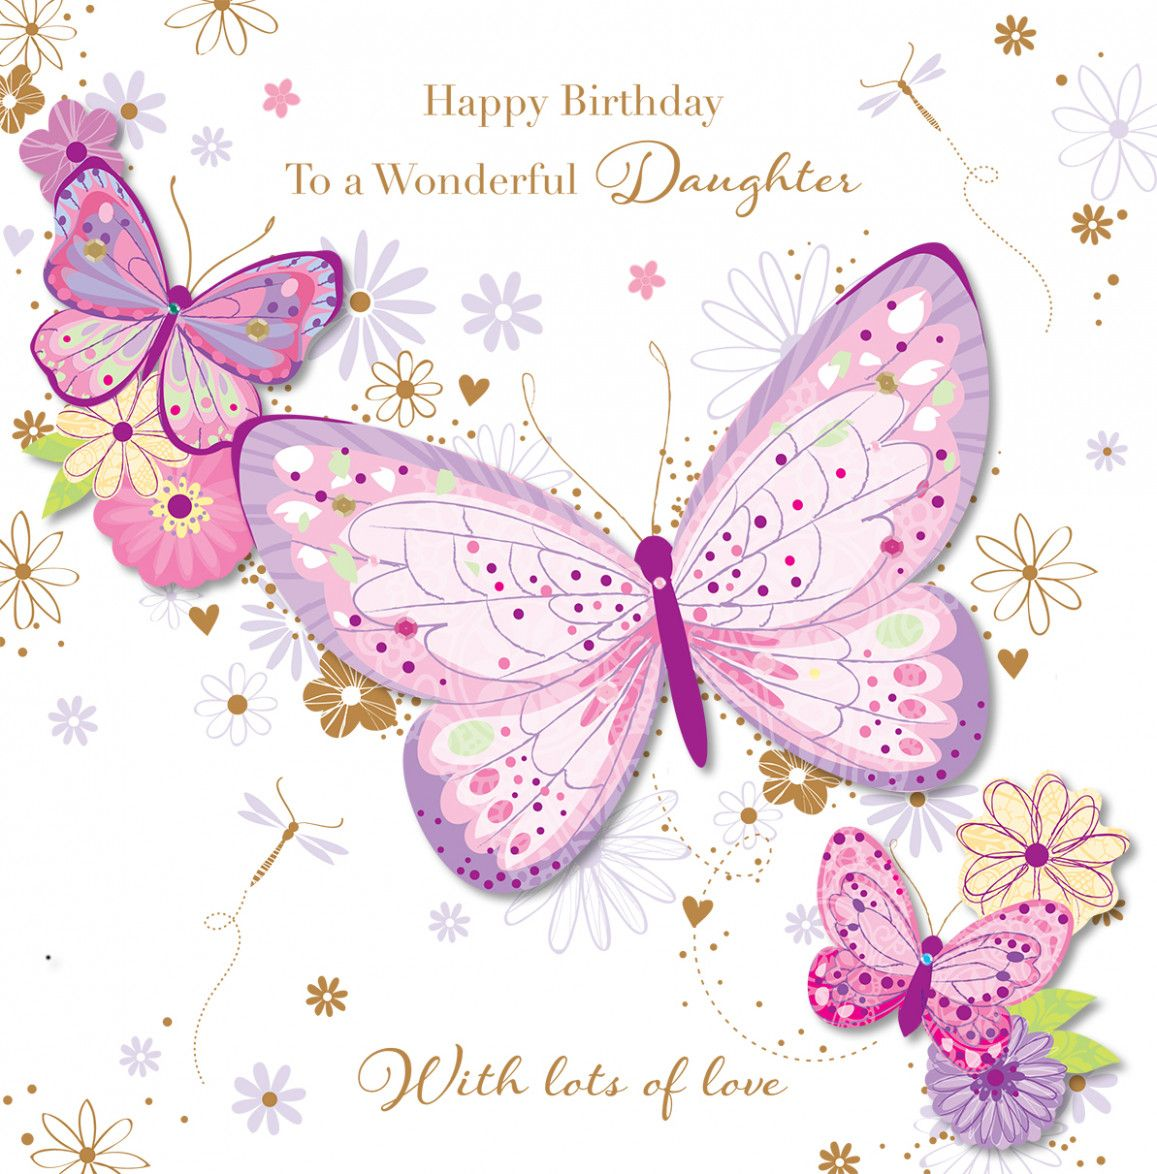 11 Best Card Happy Birthday Daughter By Ellie May Donohoe